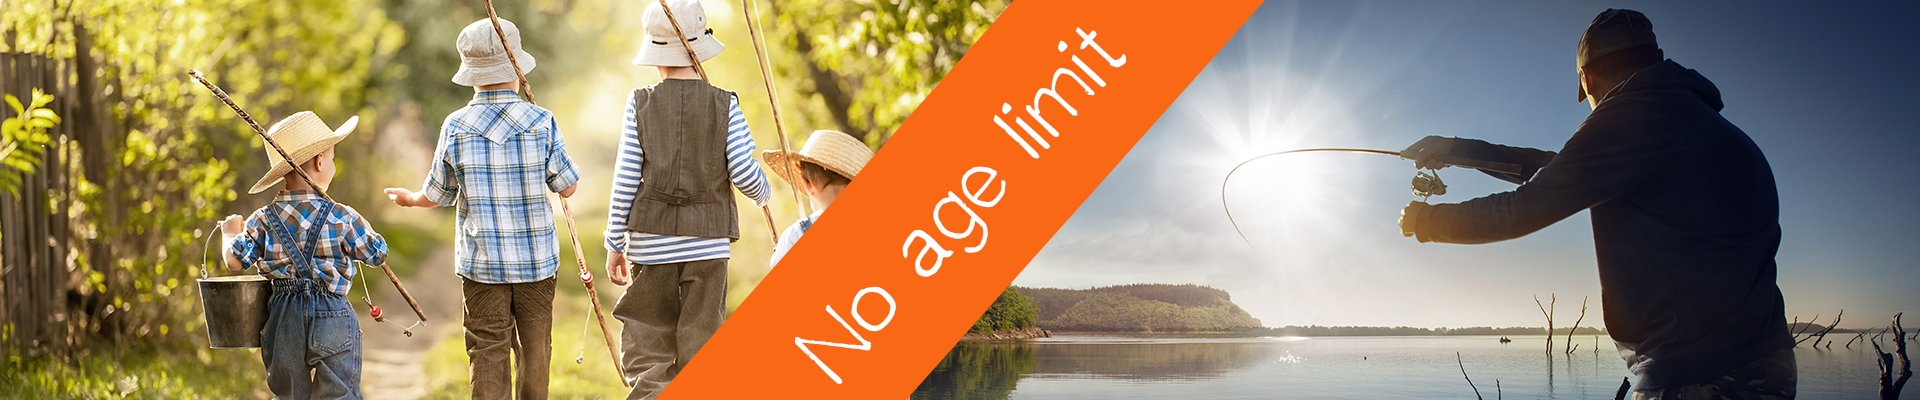 no-age-limit-young-kids-going-fishing-and-elderly-fisherman